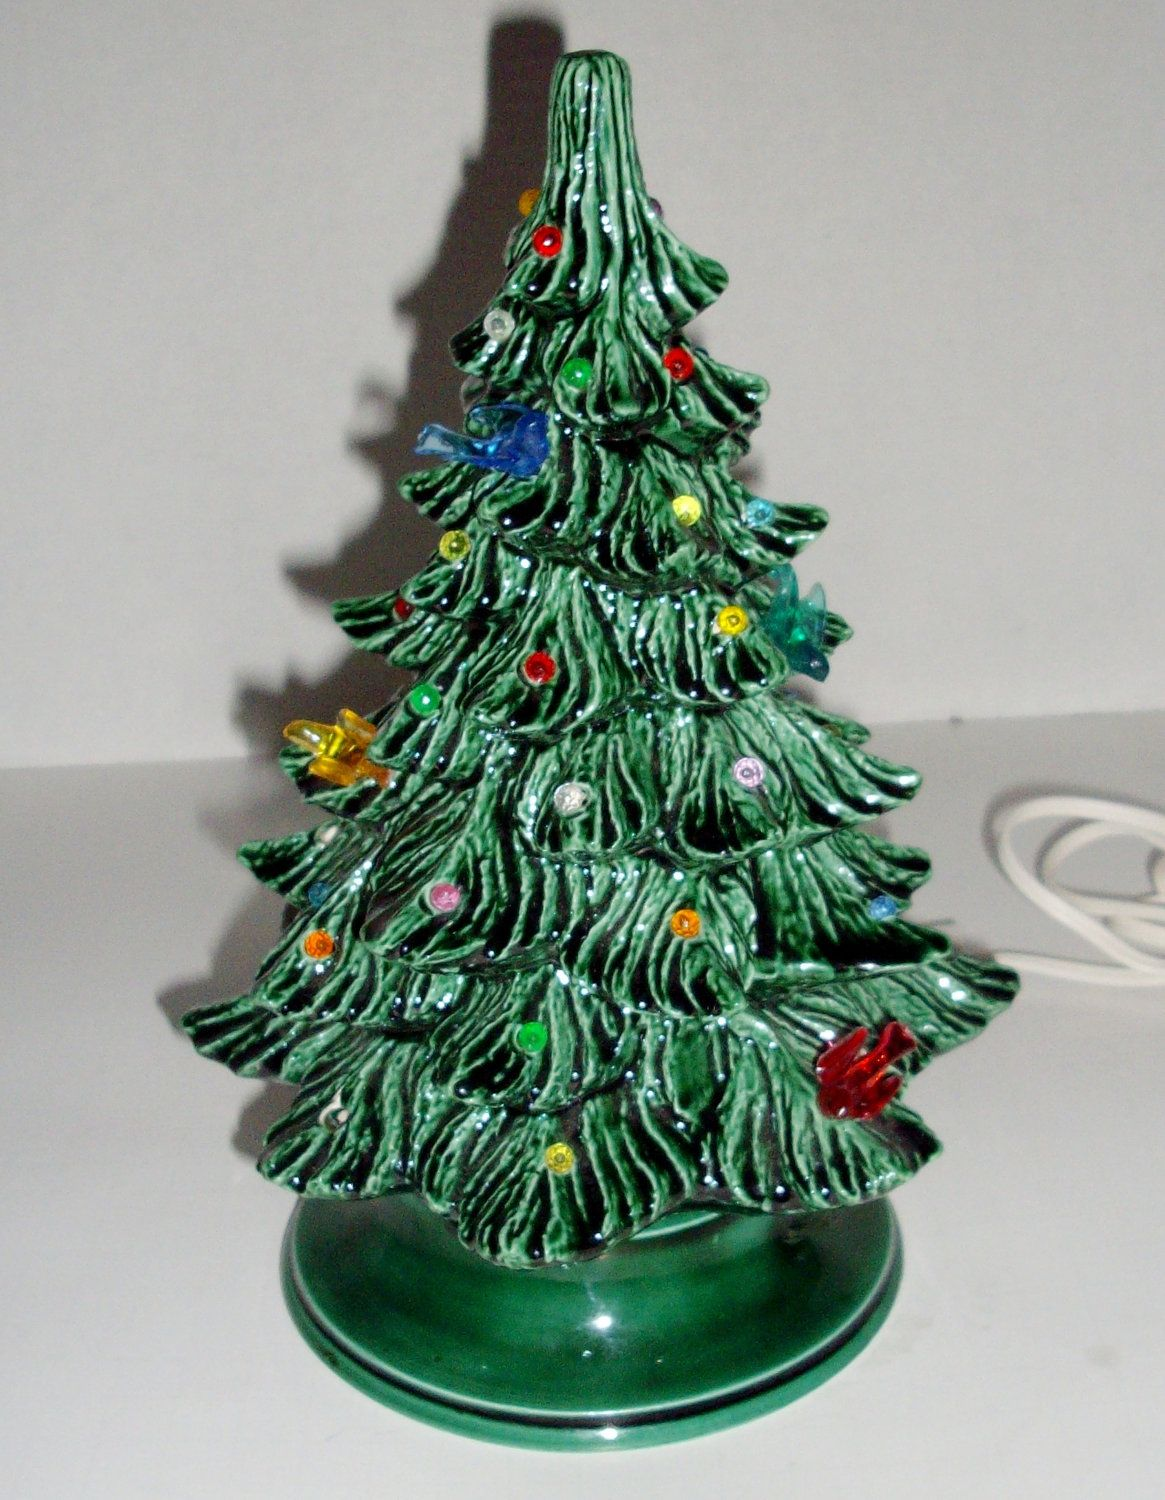 Ceramic Tabletop Christmas Tree With Lights Alluring Pinkerri George On Holidays  Pinterest  Vintage Christmas Design Decoration